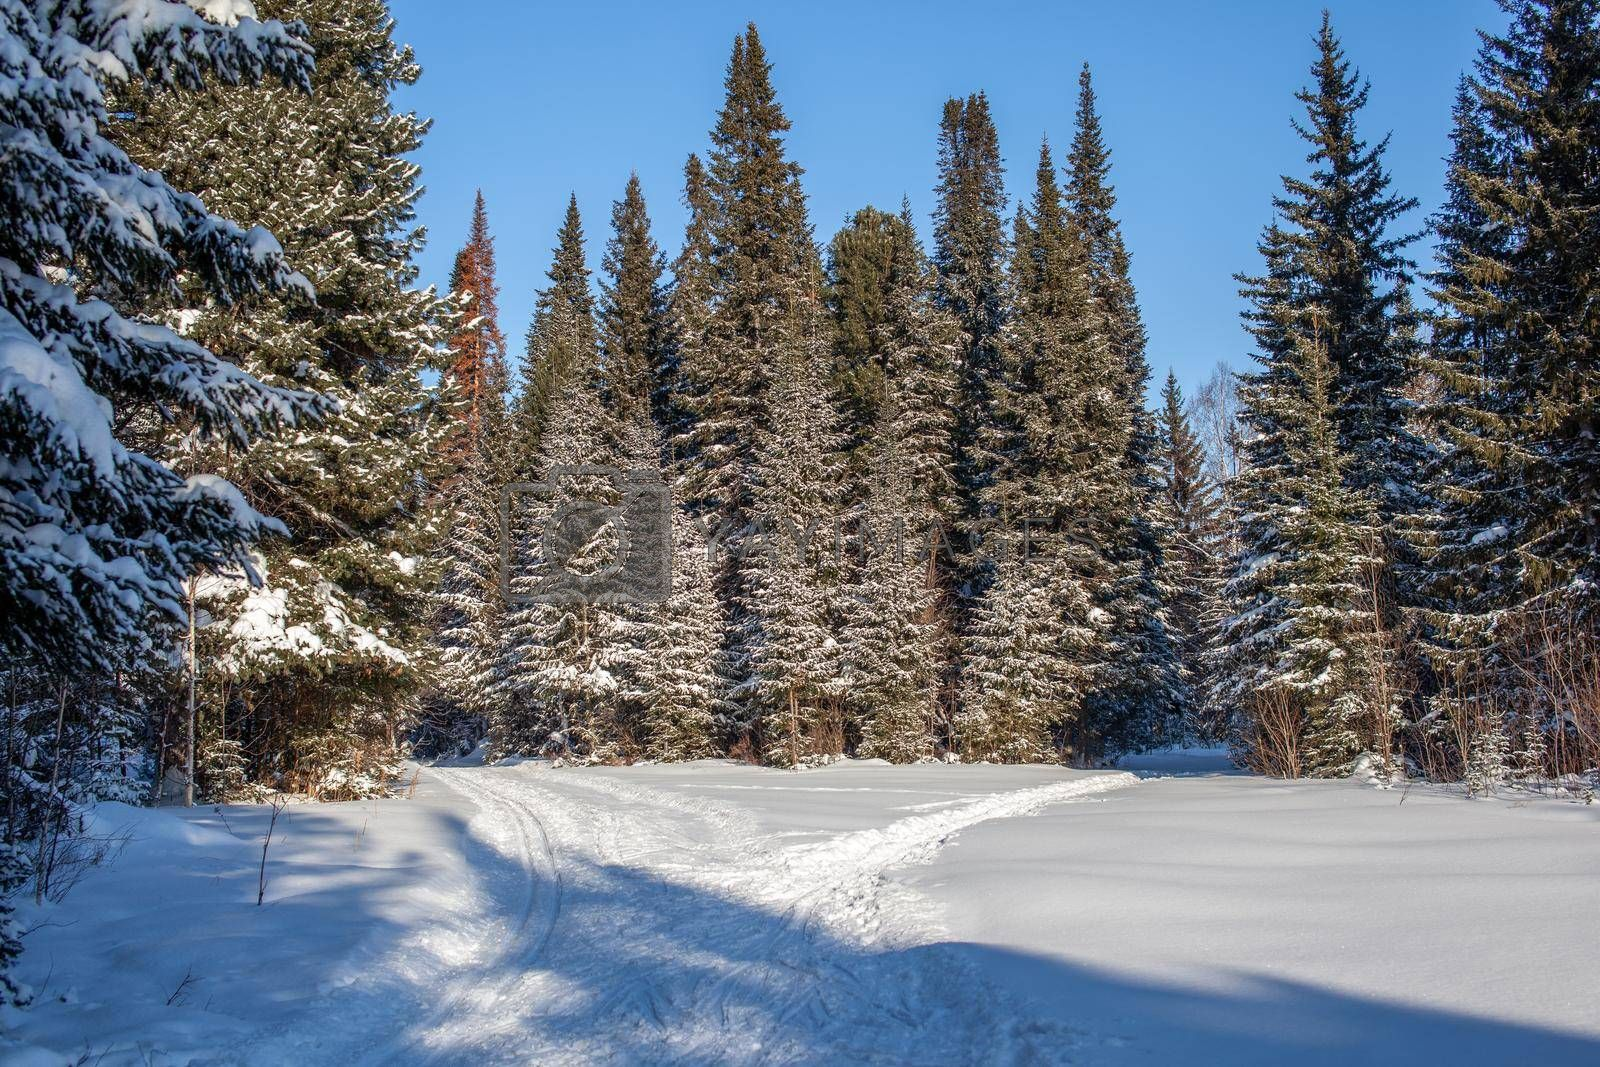 A walk through the winter forest. Snow trees and a cross-country ski trail. Beautiful and unusual roads and forest trails. Beautiful winter landscape.